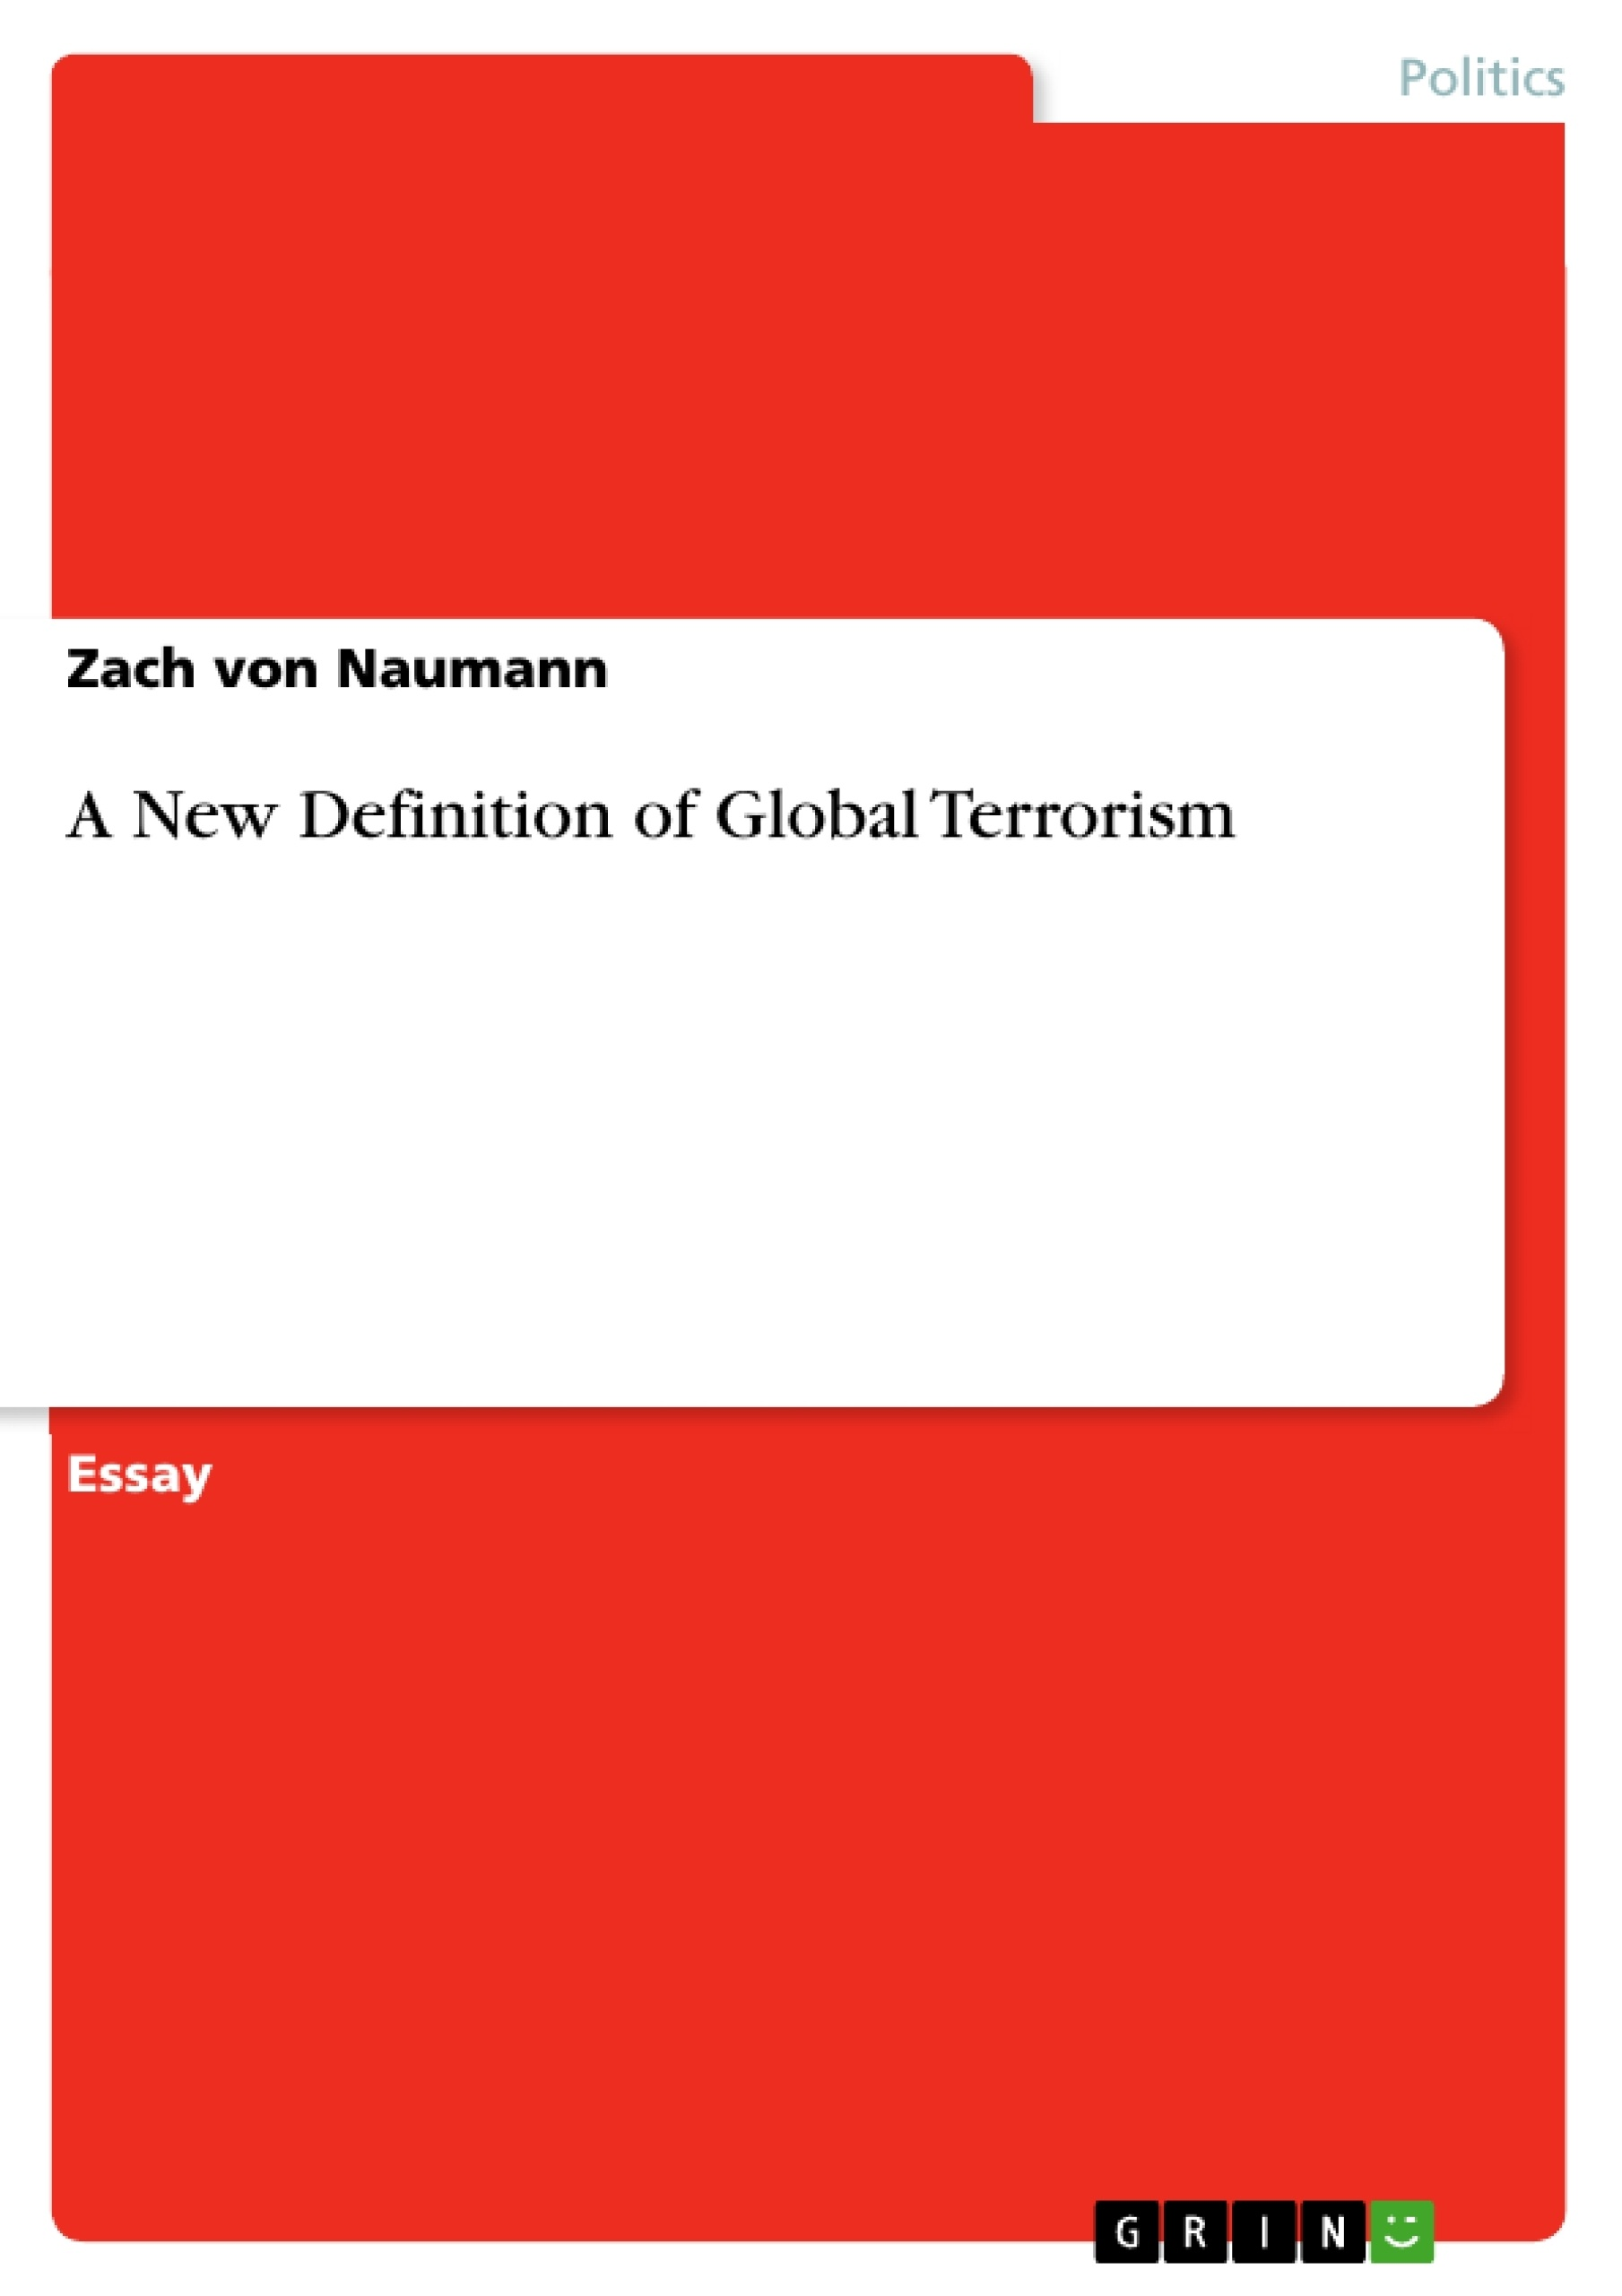 essays on terrorism international terrorism in mumbai essay a new  a new definition of global terrorism publish your master s a new definition of global terrorism publish